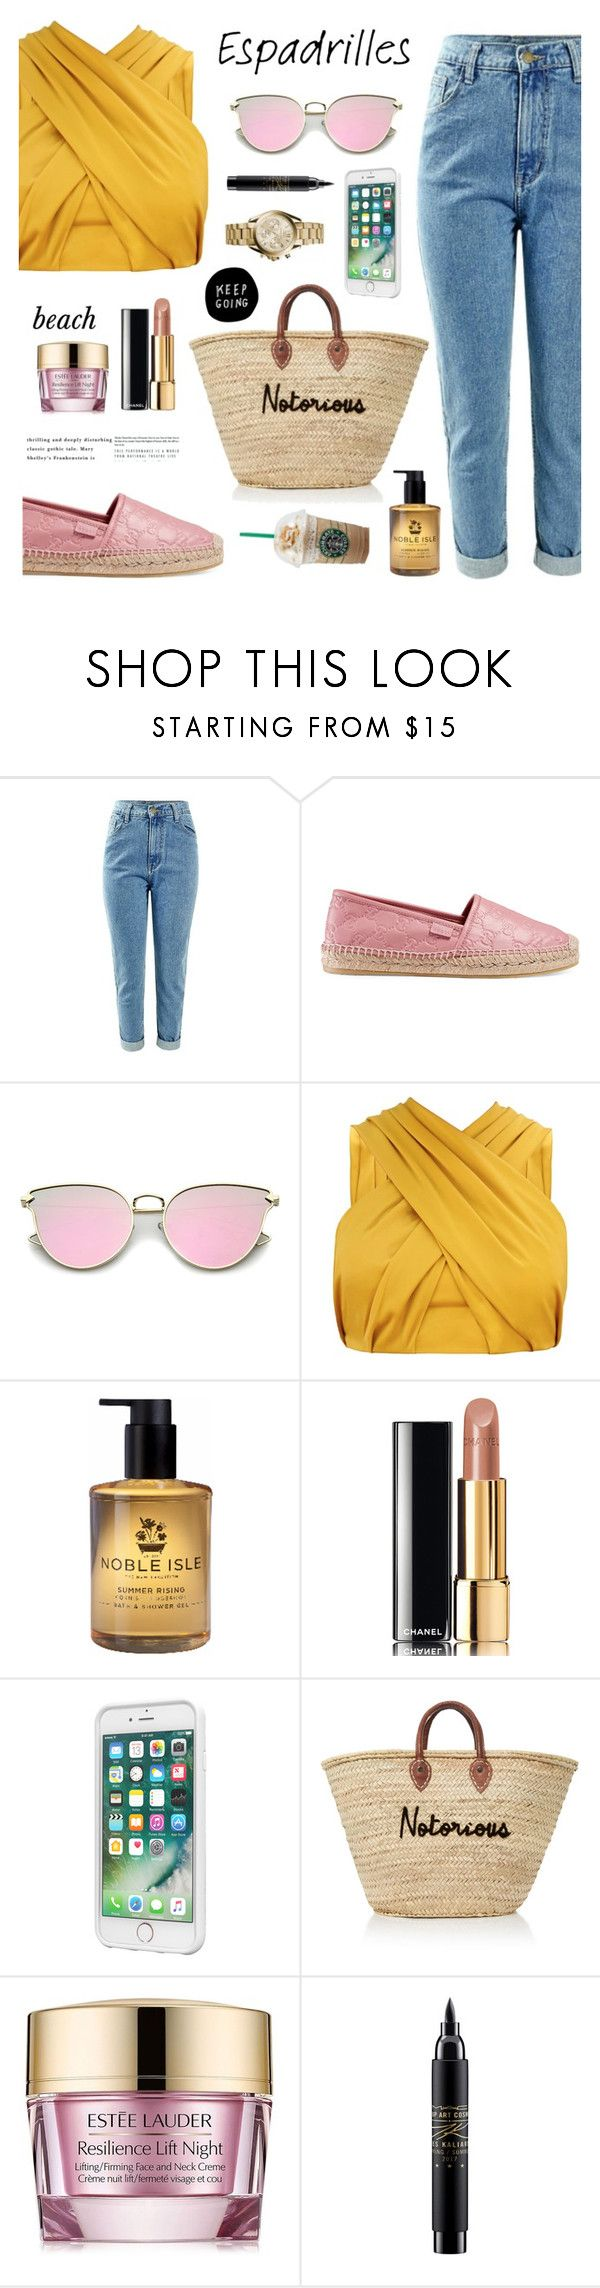 """Bella"" by nadialesa ❤ liked on Polyvore featuring Gucci, Carnill & Company, Chanel, Laut, Estée Lauder, MAC Cosmetics, Michael Kors, boyfriendjeans and espadrilles"